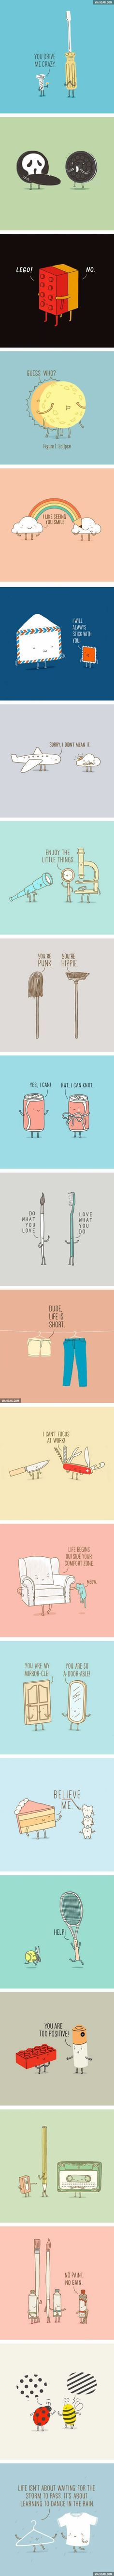 The Cutest Conversations Between Everyday's Objects (By Lim Heng Swee) - 9GAG